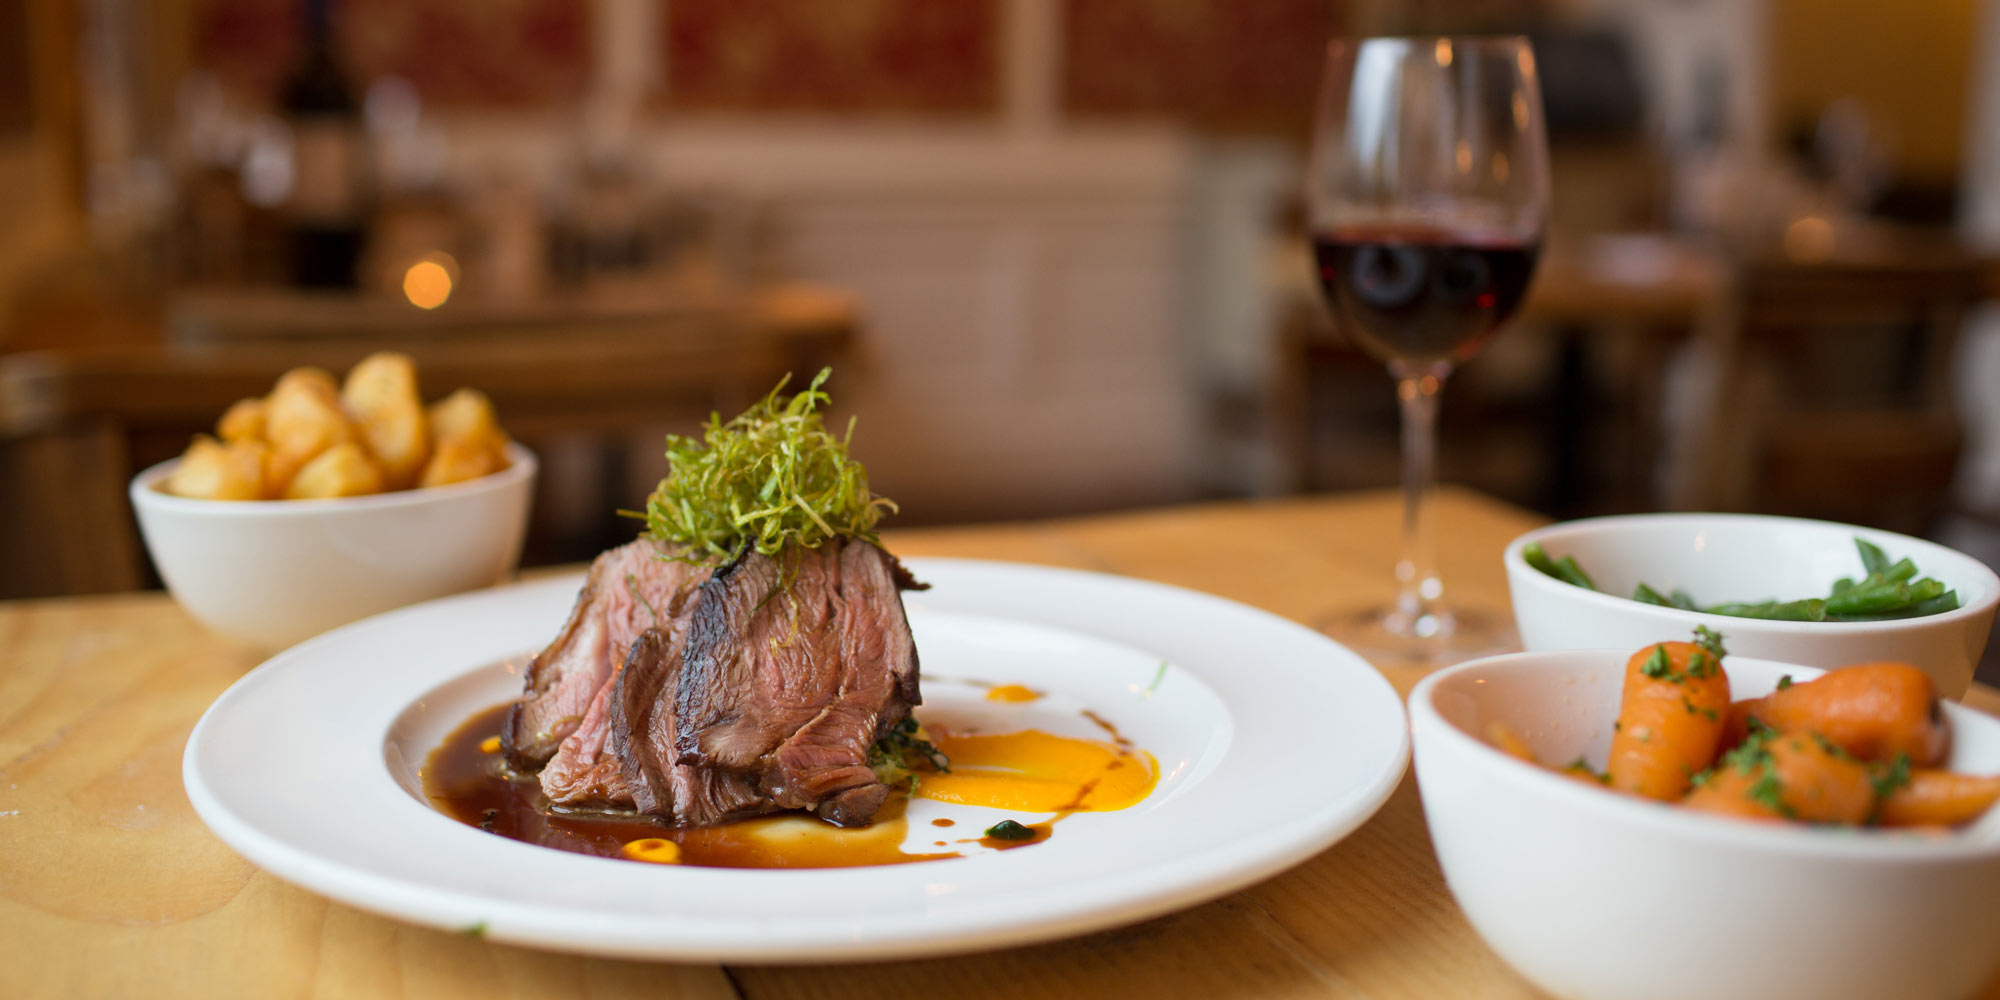 Private dining in clifton bristol no 4 clifton village for Best private dining rooms bristol